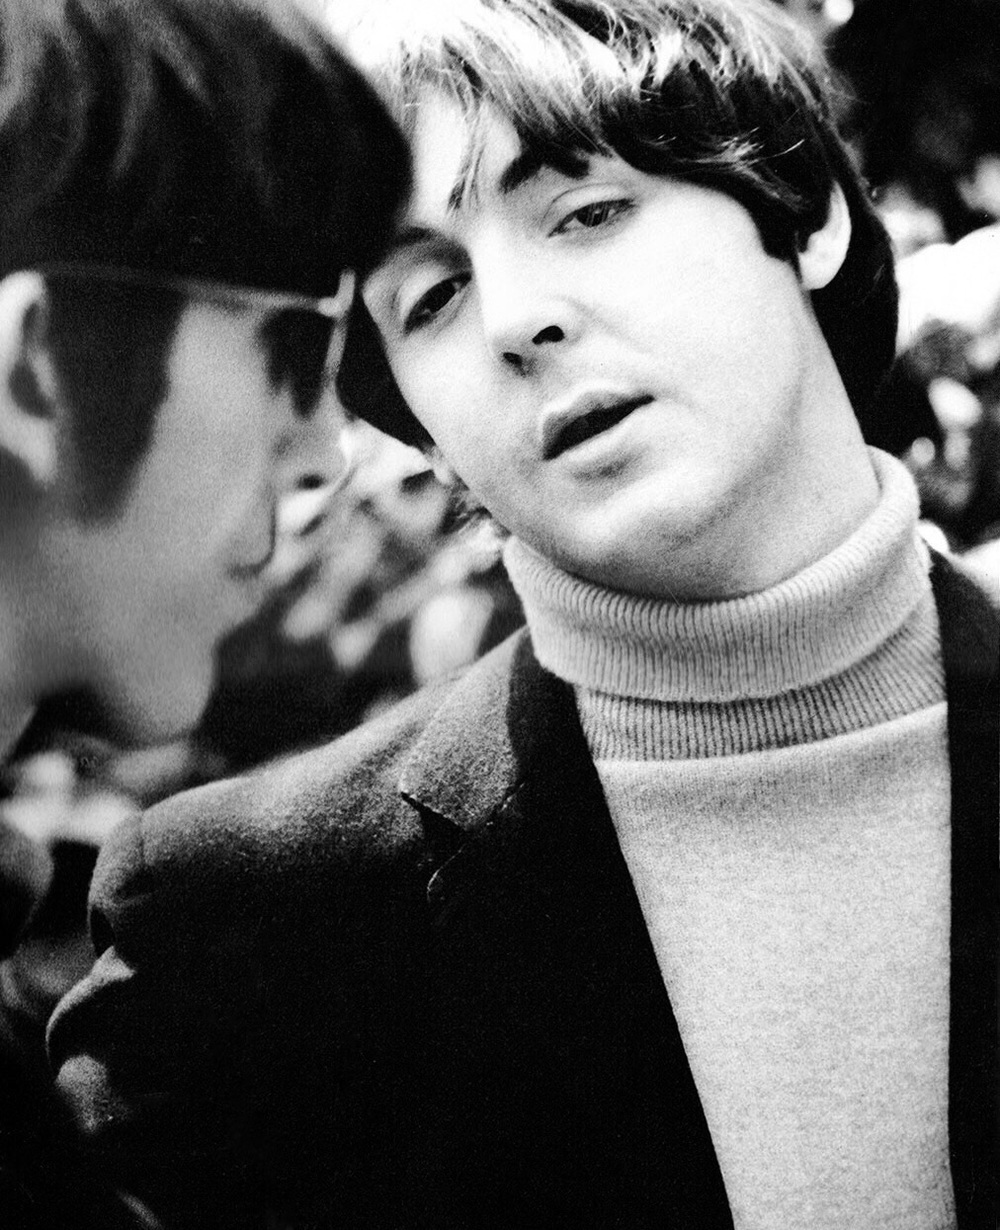 George Harrison and Paul McCartney at Chiswick House, May 20th, 1966.